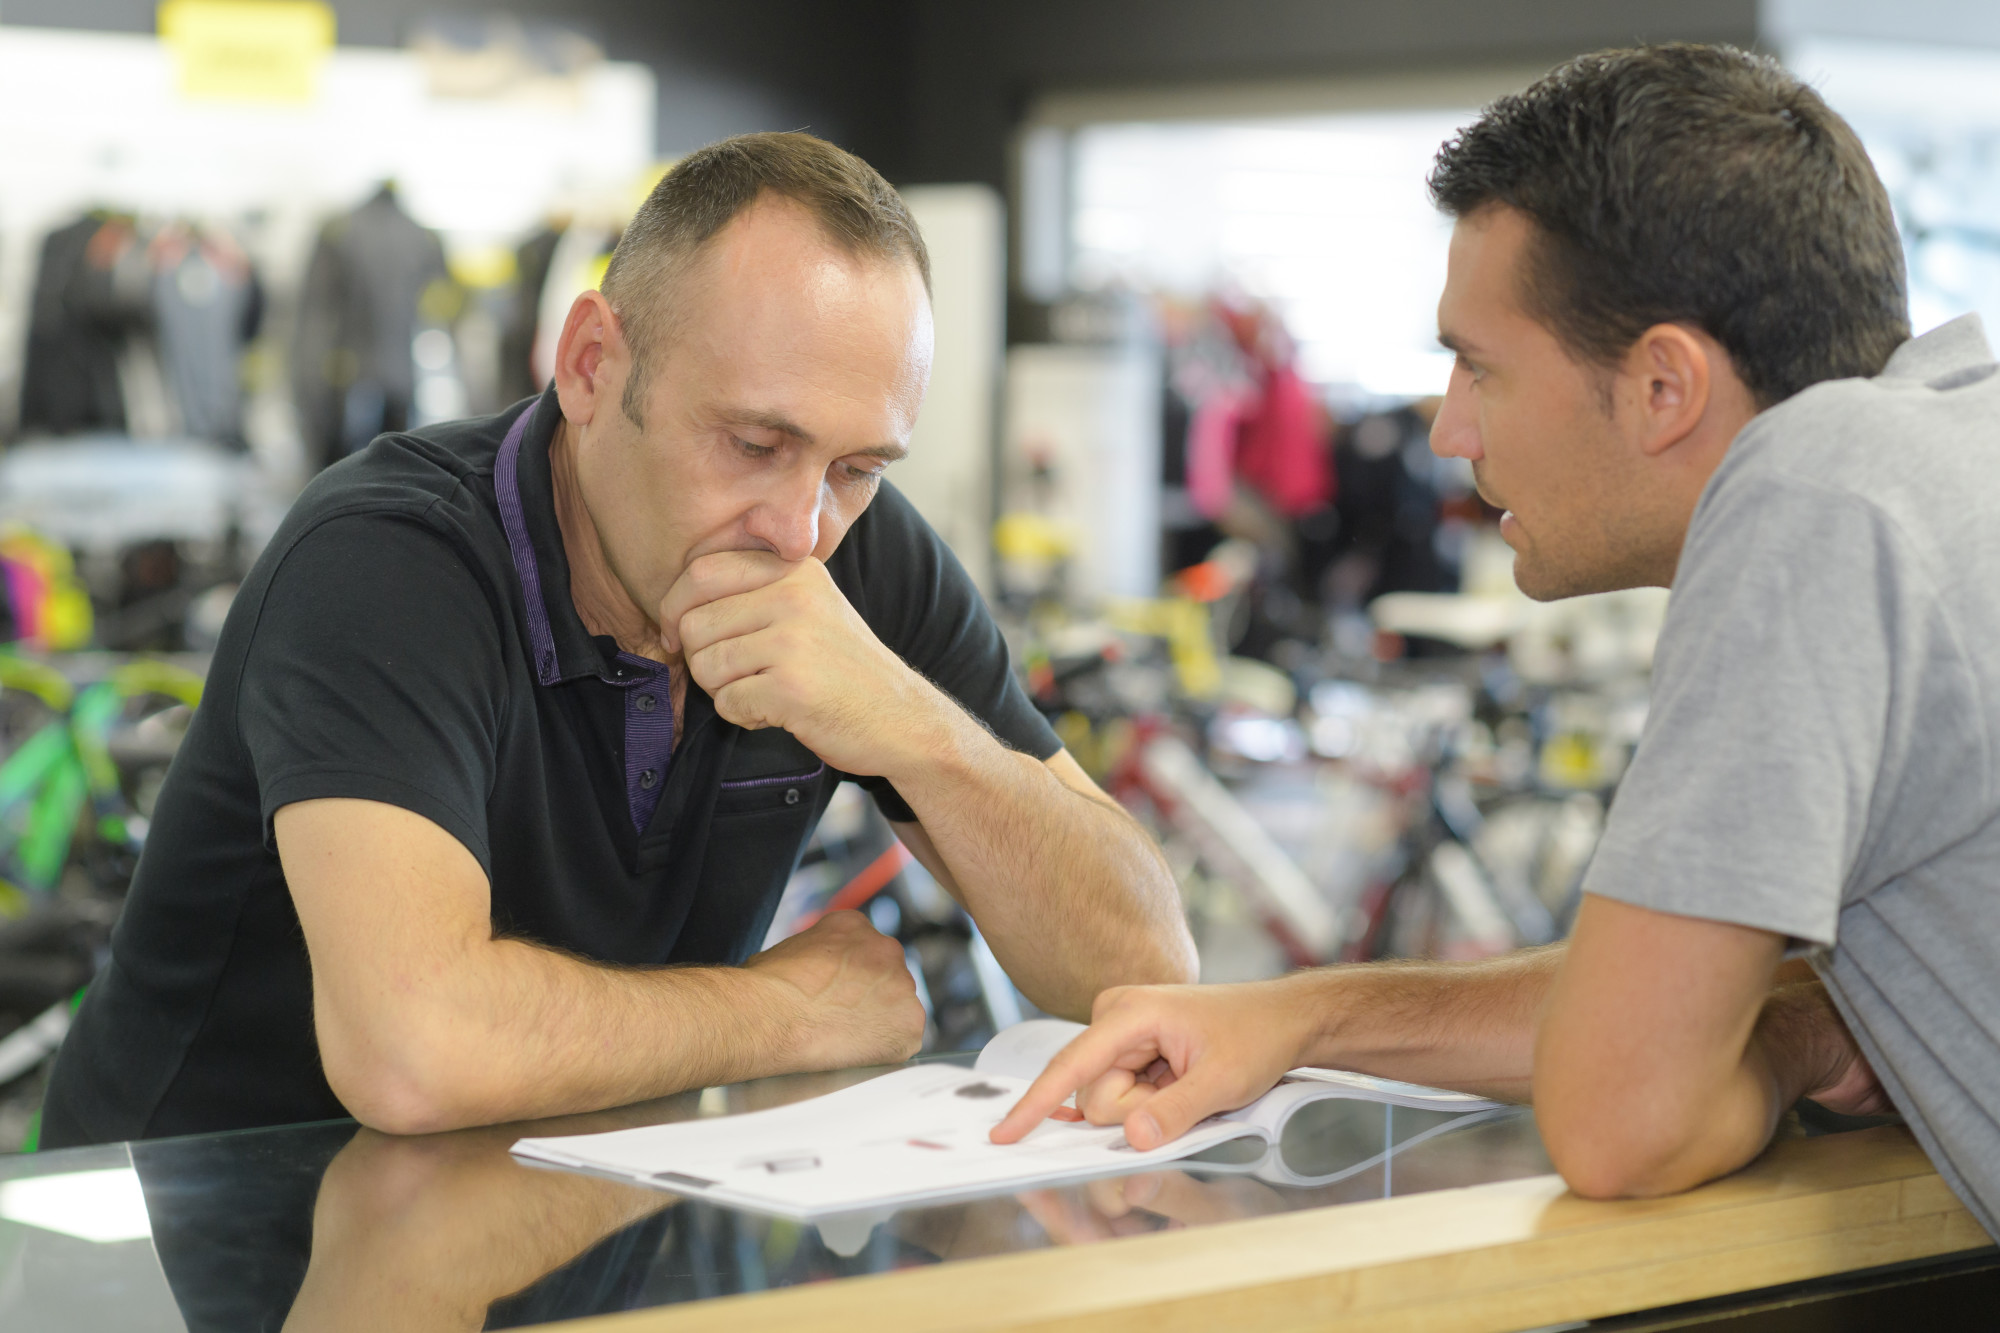 How To Be A Great Salesman For Your Own Products: Insider Business Tips For Rookies